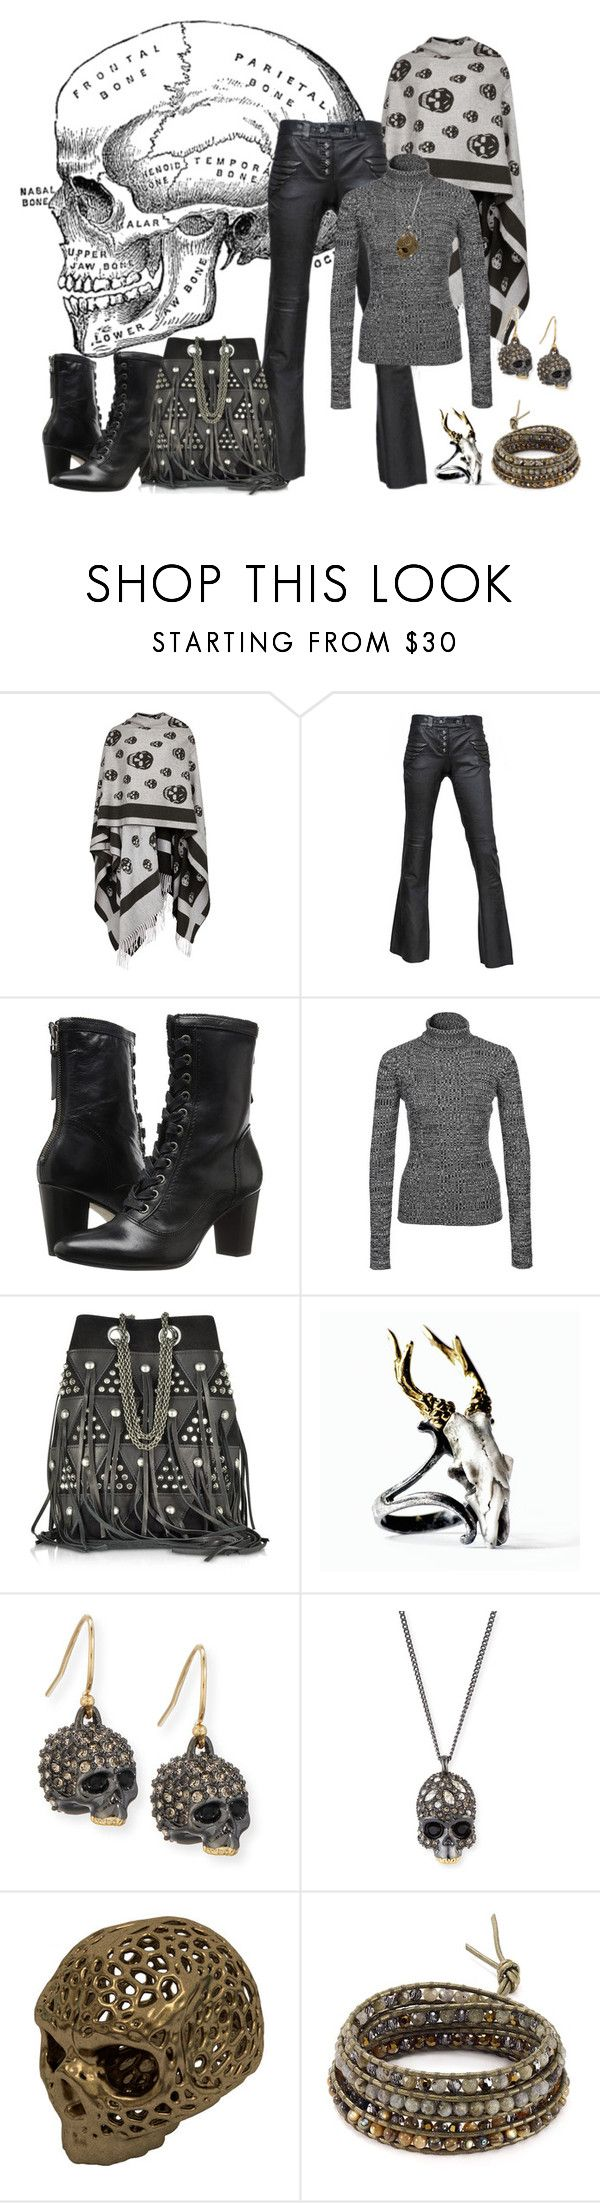 """Lost My Head!"" by lily0906 ❤ liked on Polyvore featuring Alexander McQueen, Johnston & Murphy, NLY Trend, Jérôme Dreyfuss, Macabre Gadgets, Alexis Bittar, Chan Luu, Leather and skull"